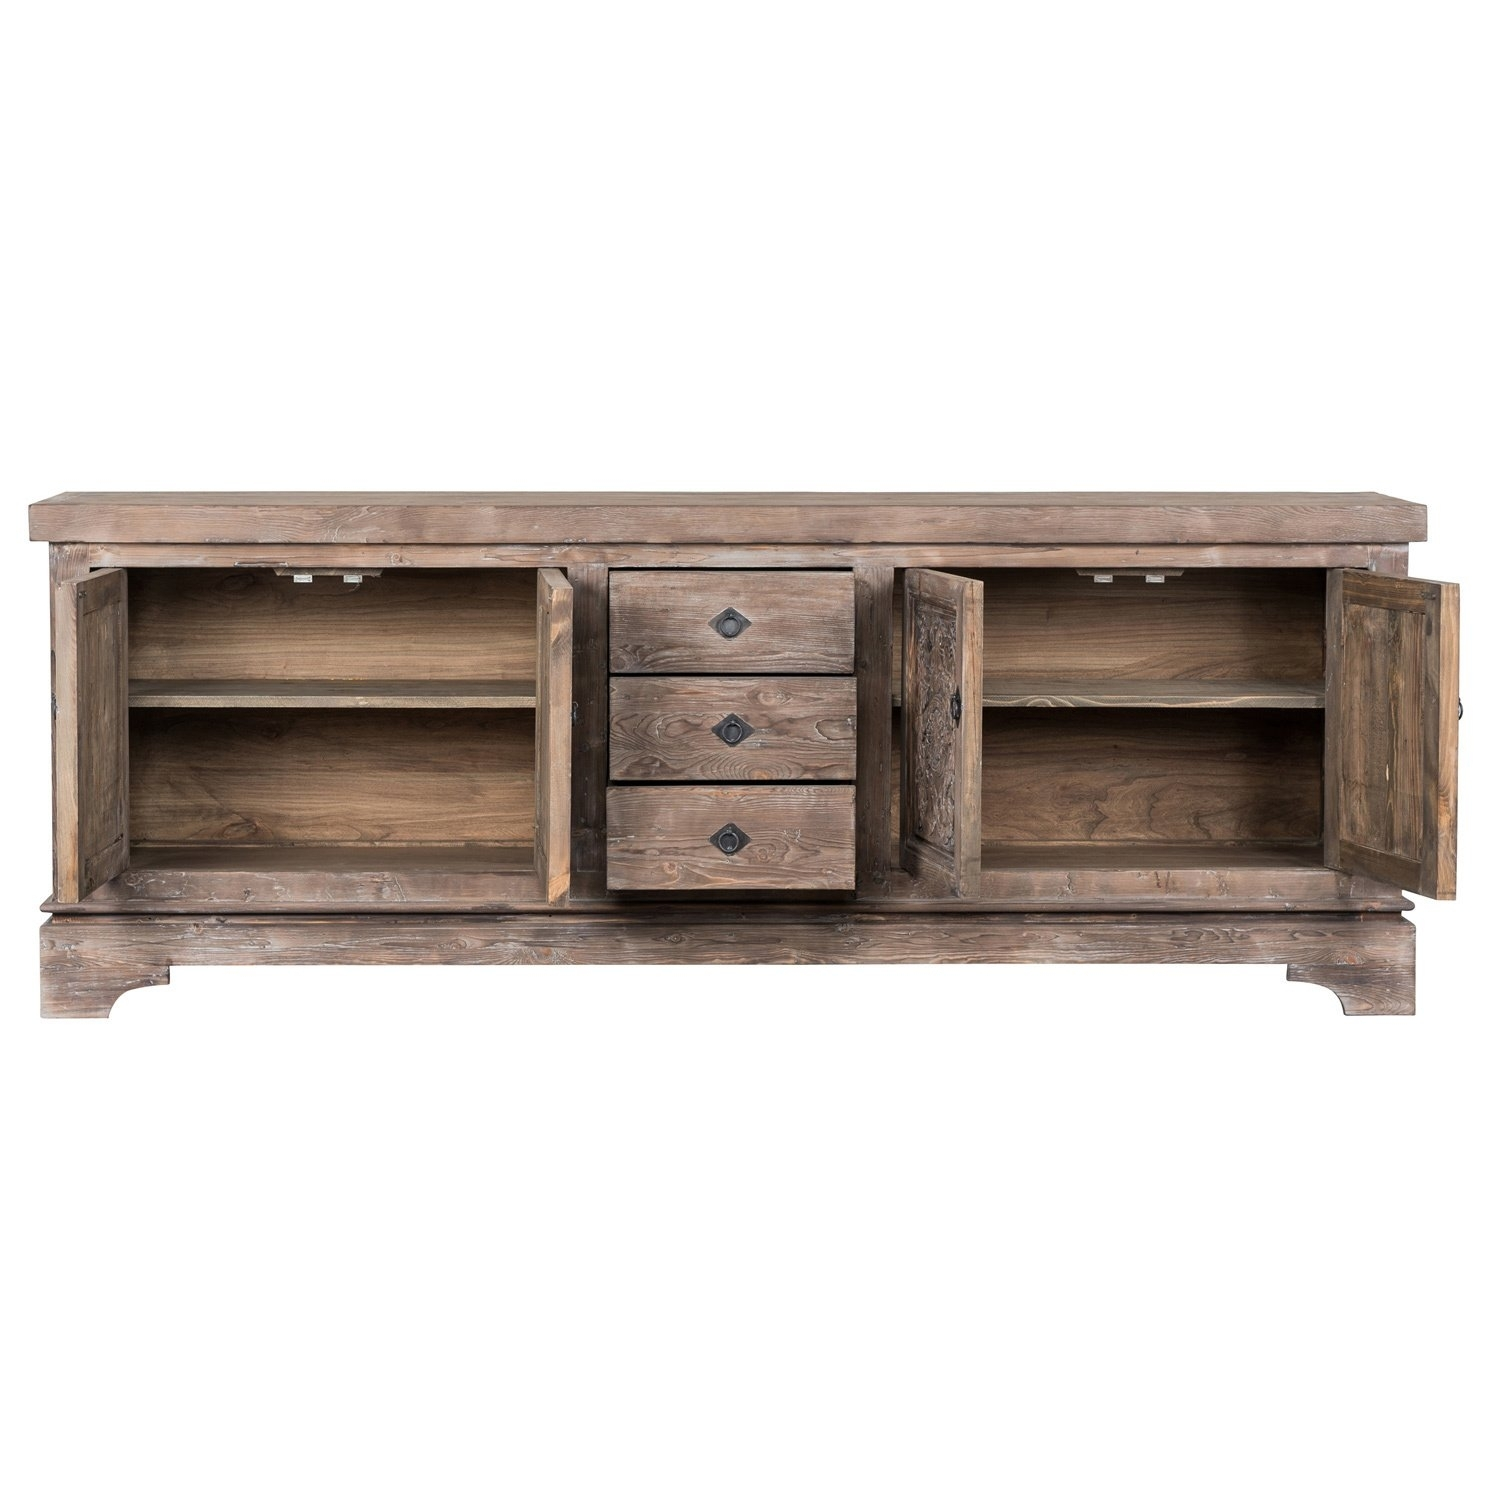 Shop Allen Rustic Taupe Reclaimed Pine 106-Inch Sideboardkosas within Reclaimed Pine & Iron 72 Inch Sideboards (Image 23 of 30)